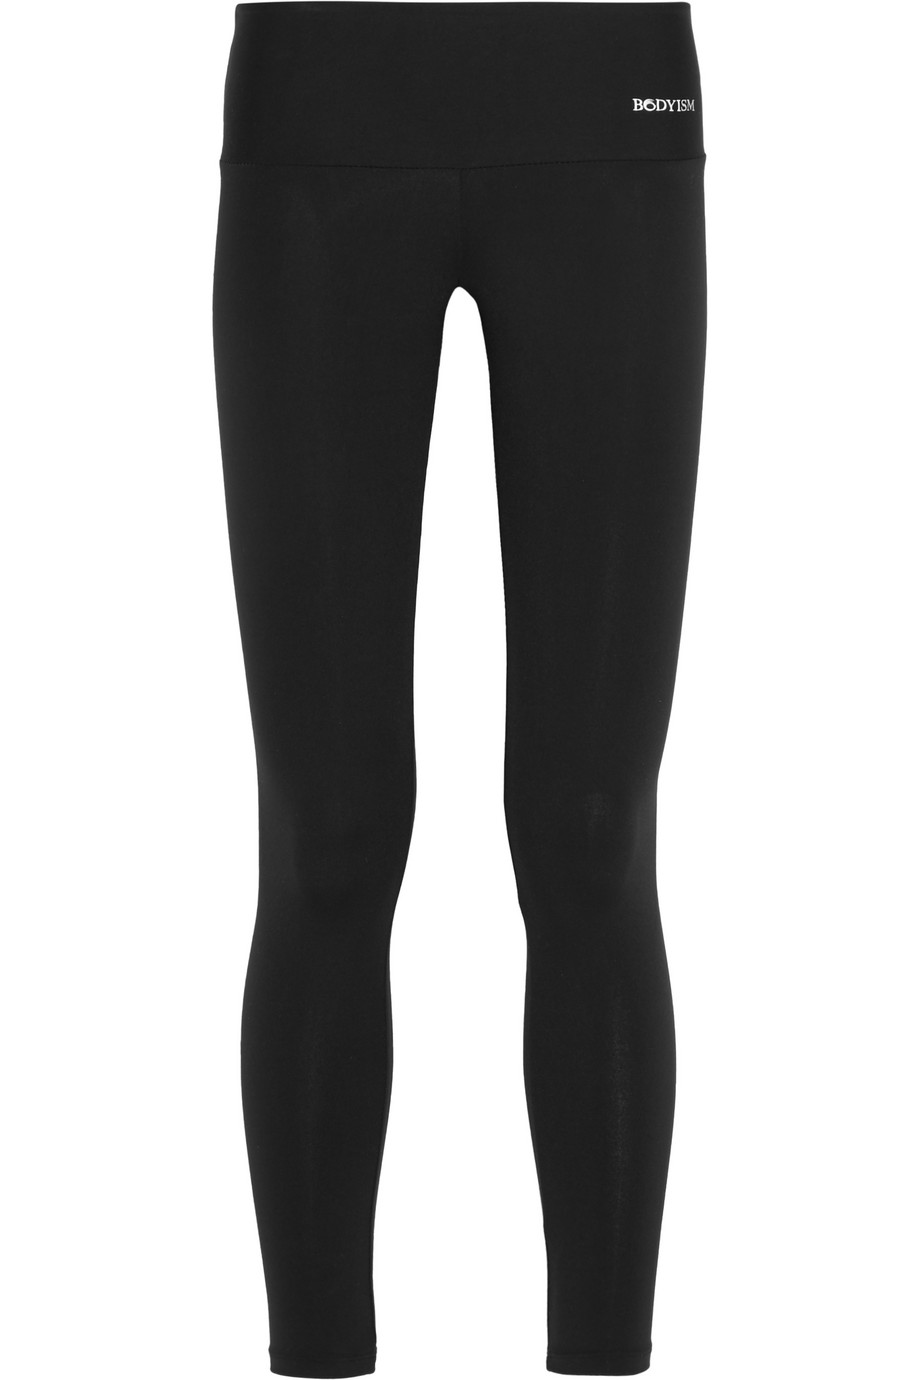 Bodyism Nathalie Stretch-Jersey Leggings, Black, Women's